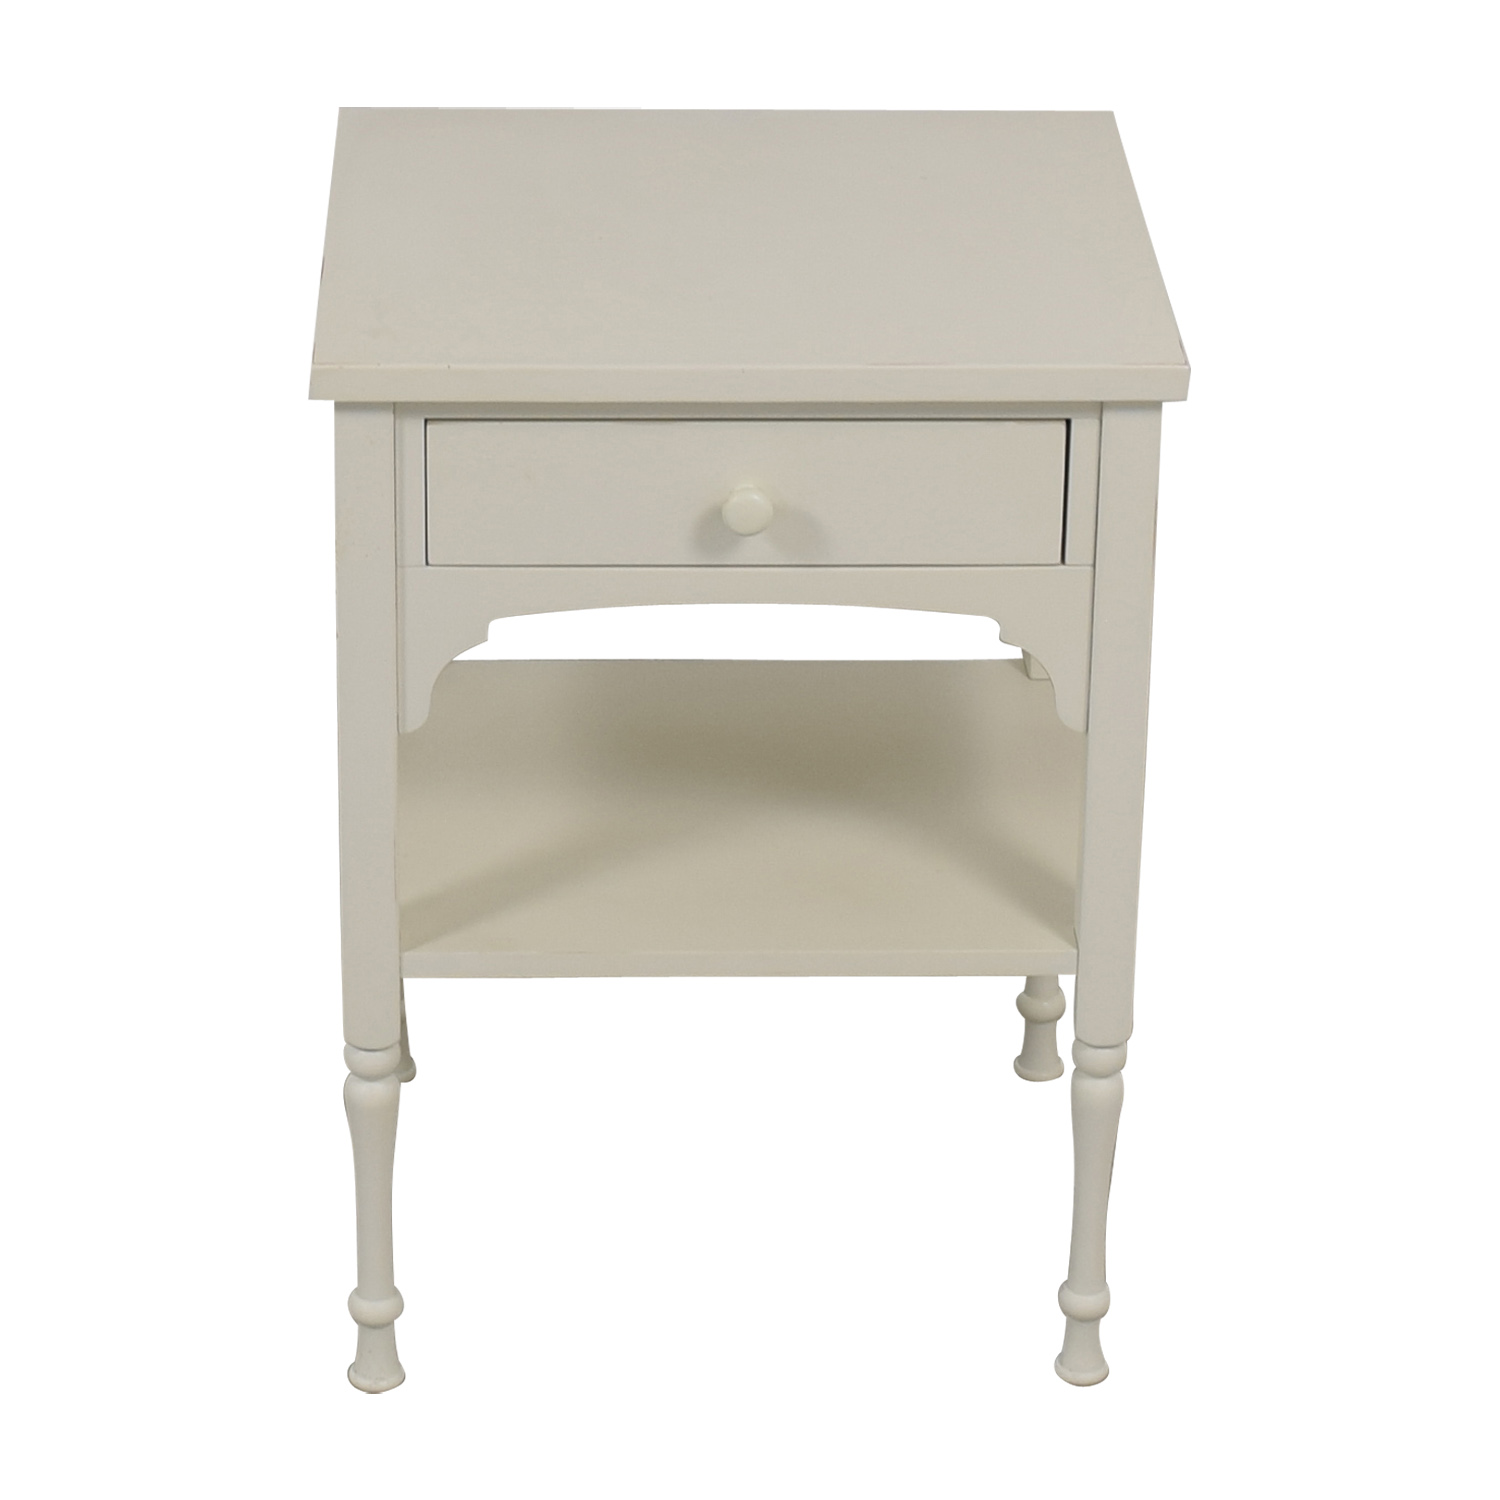 Pottery Barn Adelle Night Table / Tables